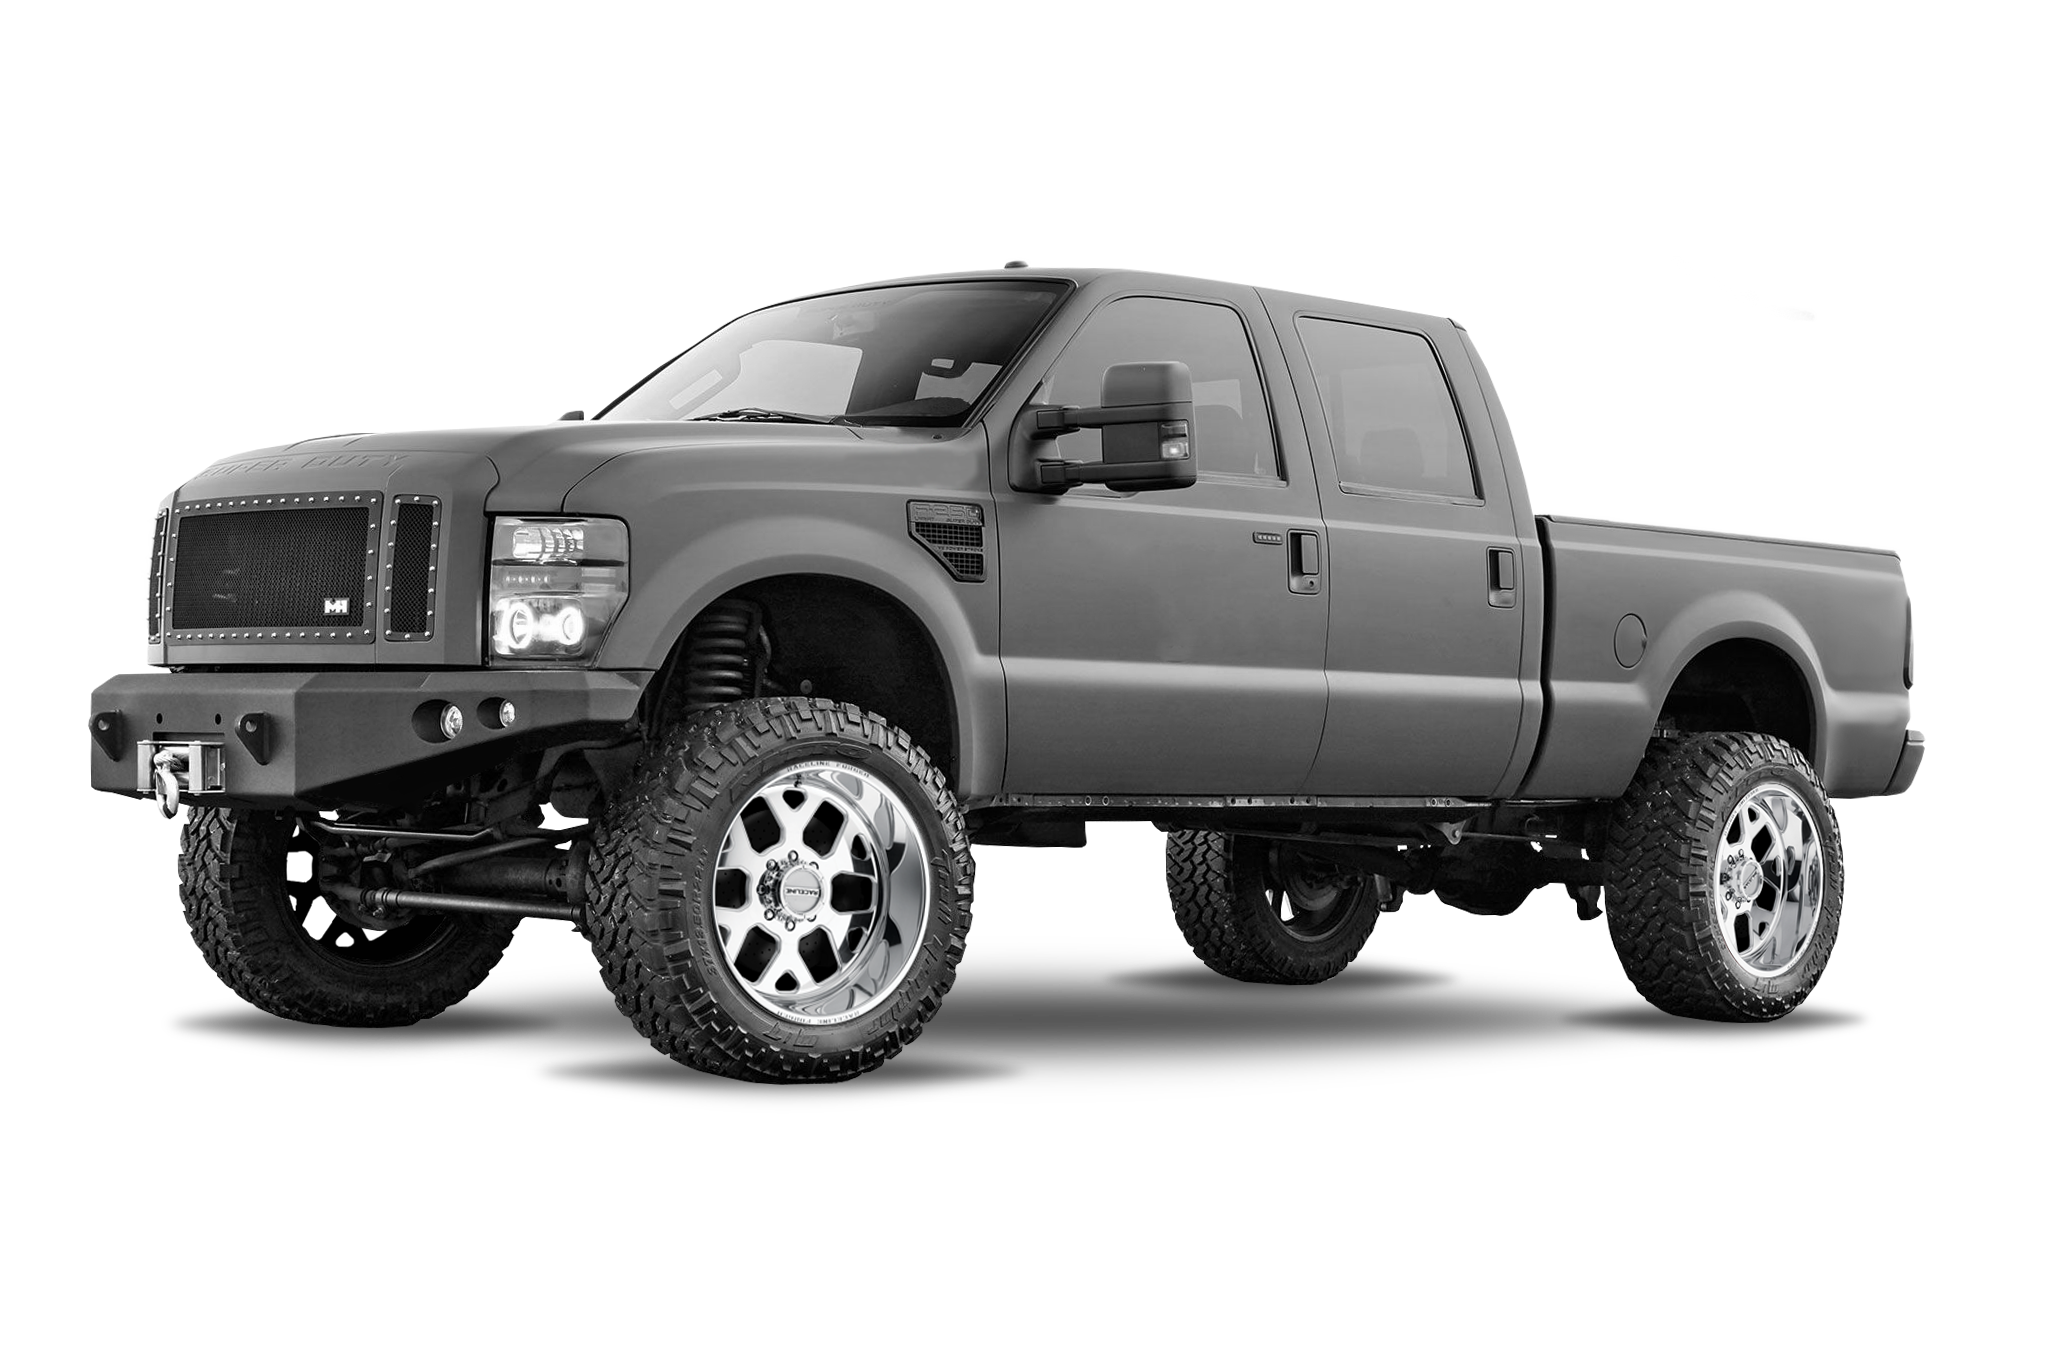 2010-ford-f-250-4wd-front-three-quarter.png